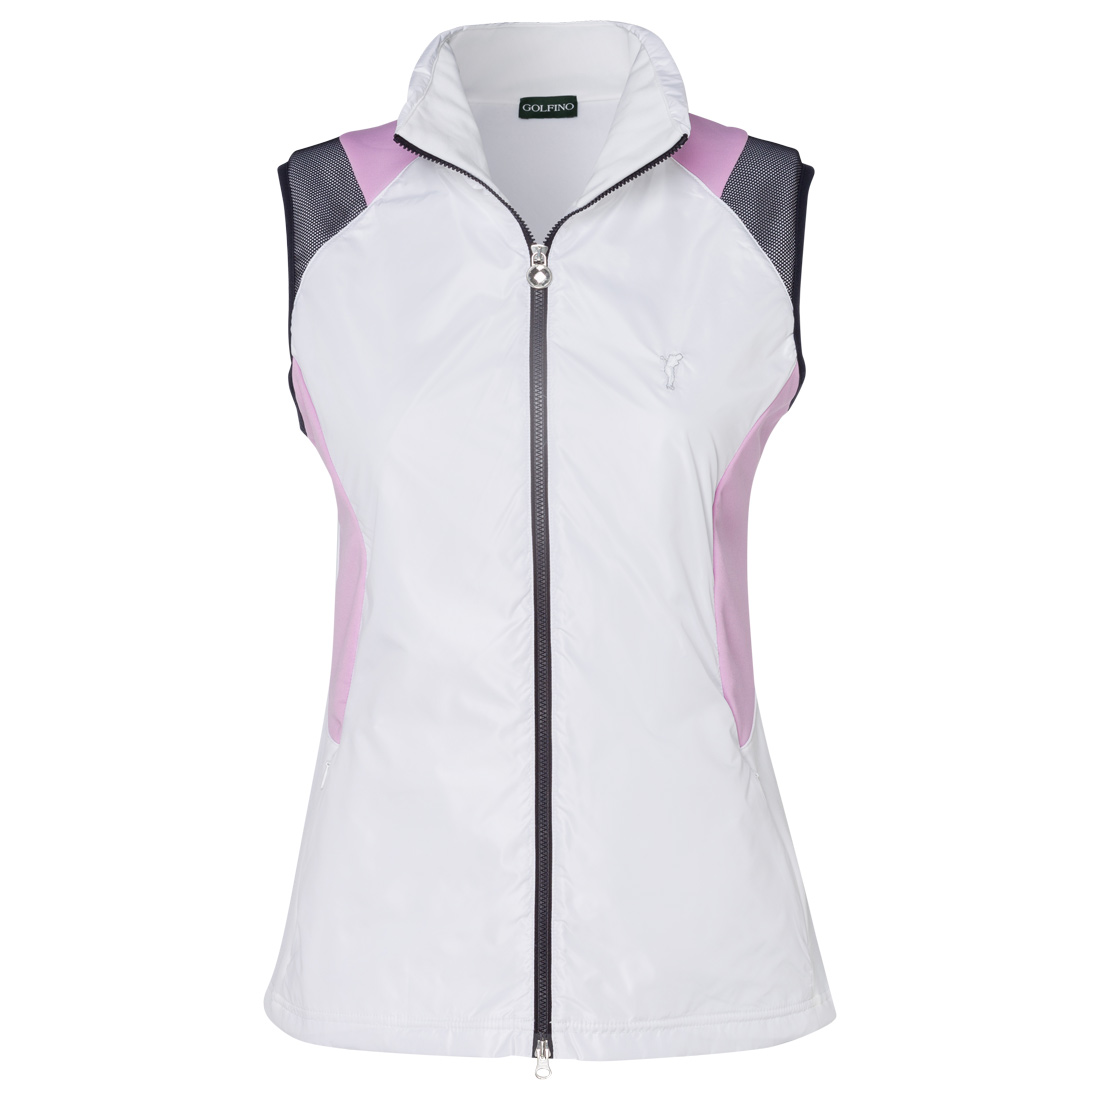 Damen Golf Weste in Regular Fit